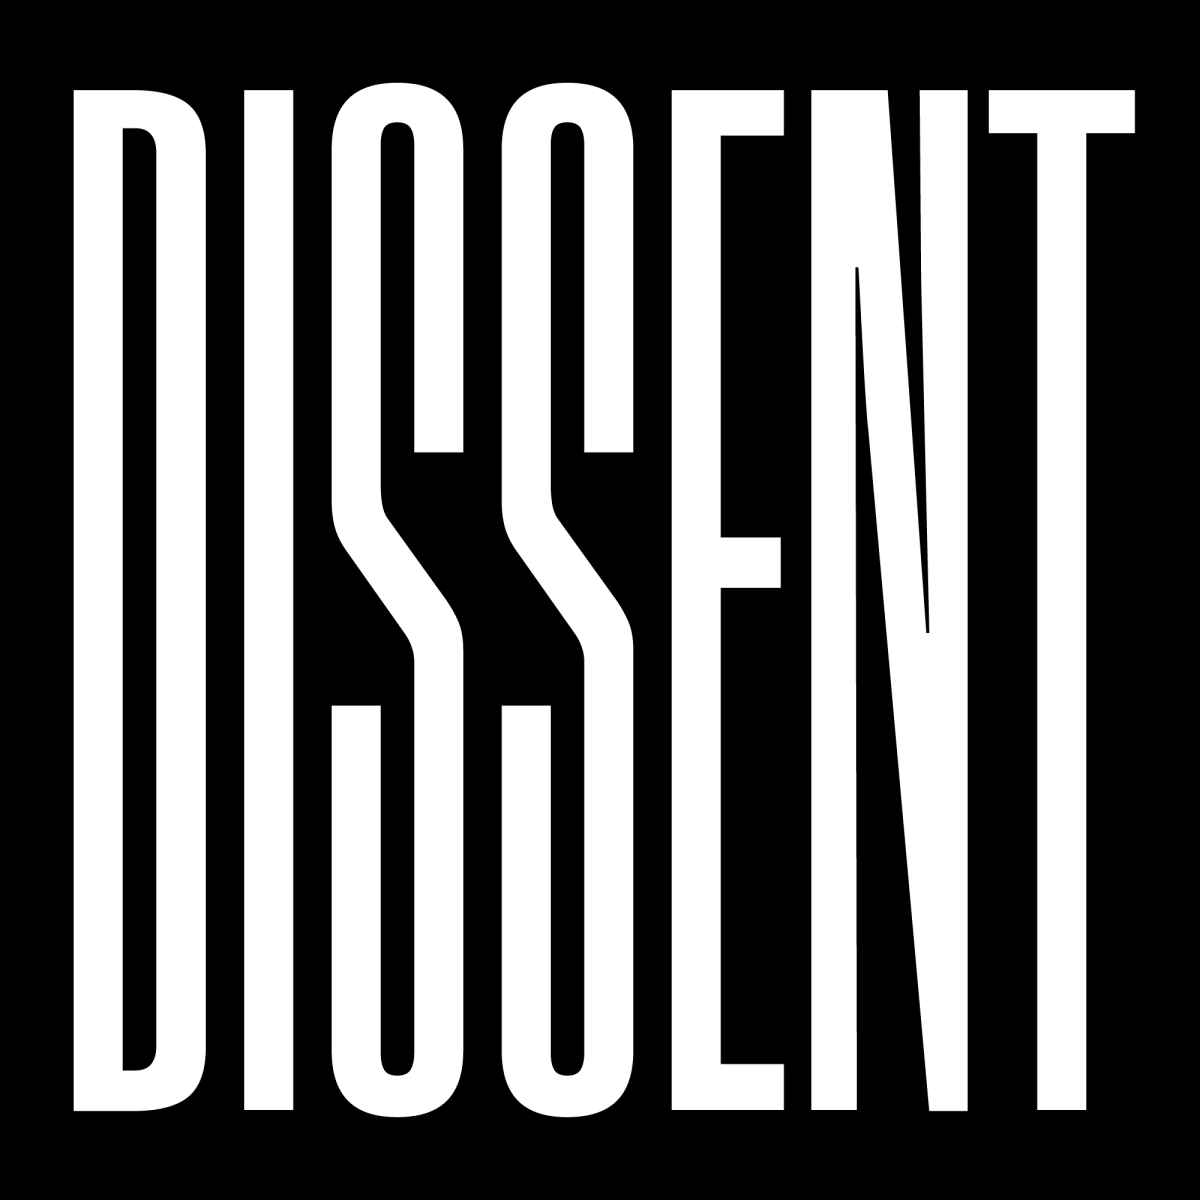 Dissent by Gina Messina